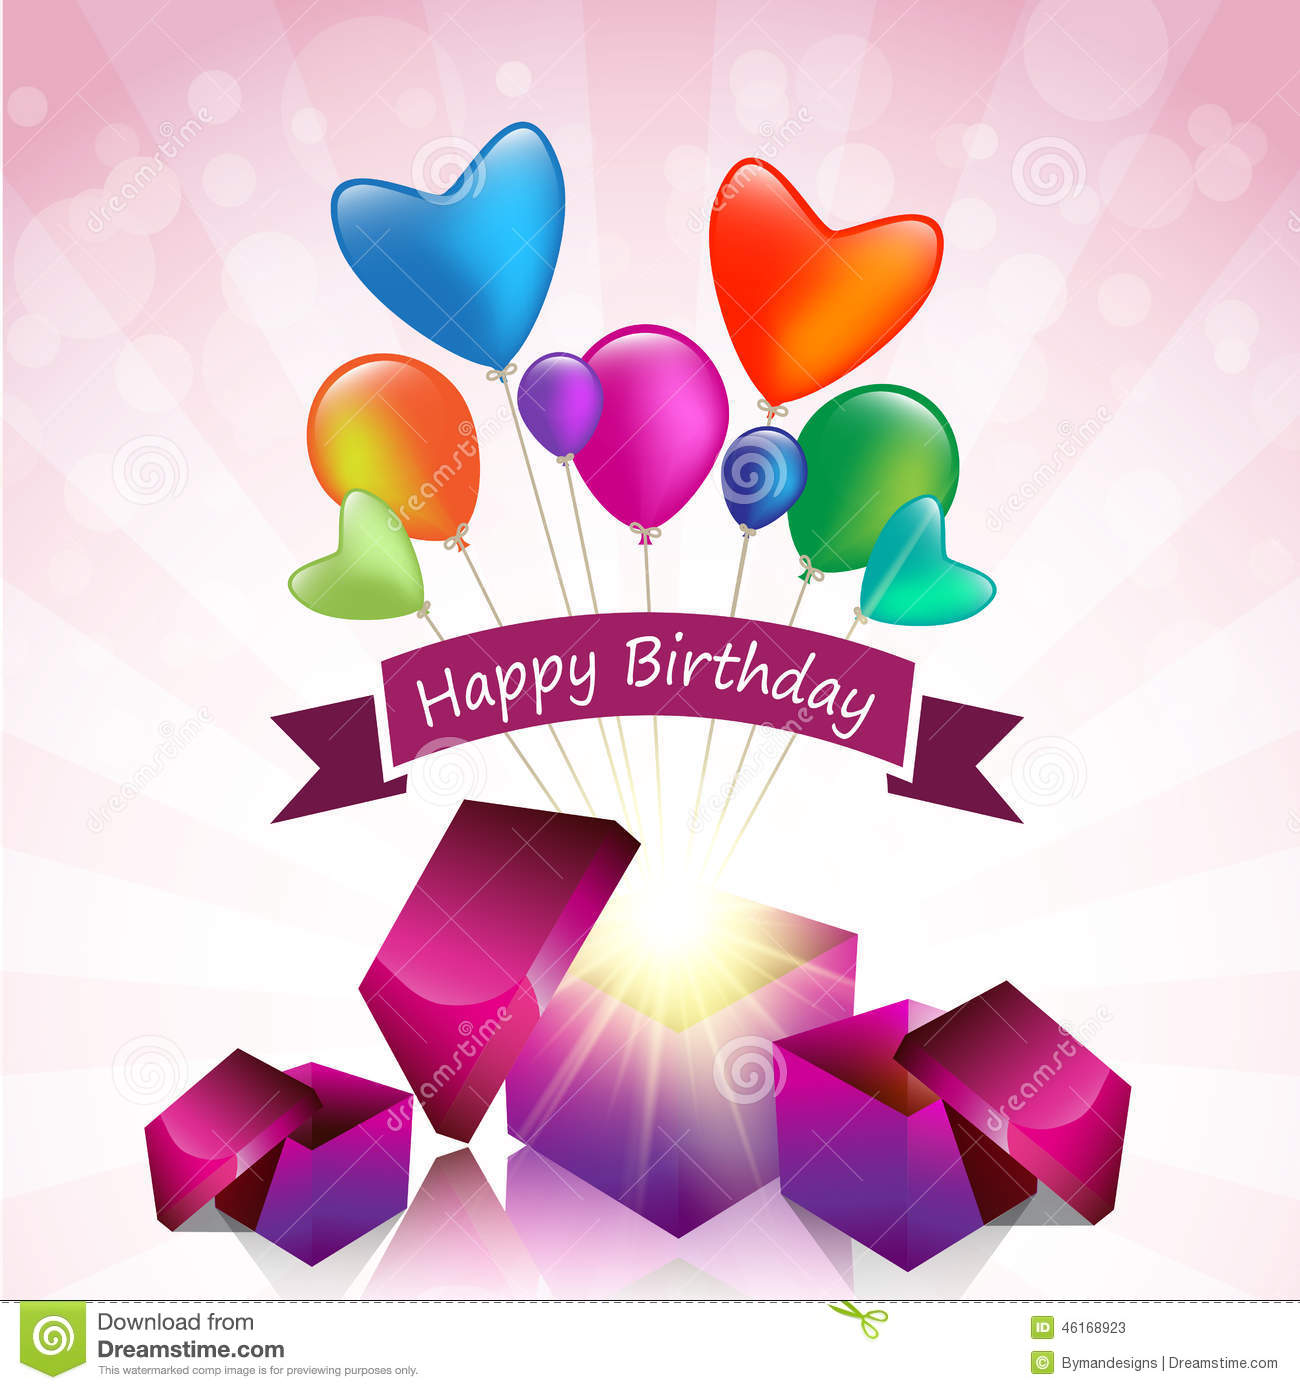 Carte Cadeau Wish Happy Birthday Card With Magic Gift Box And Colored